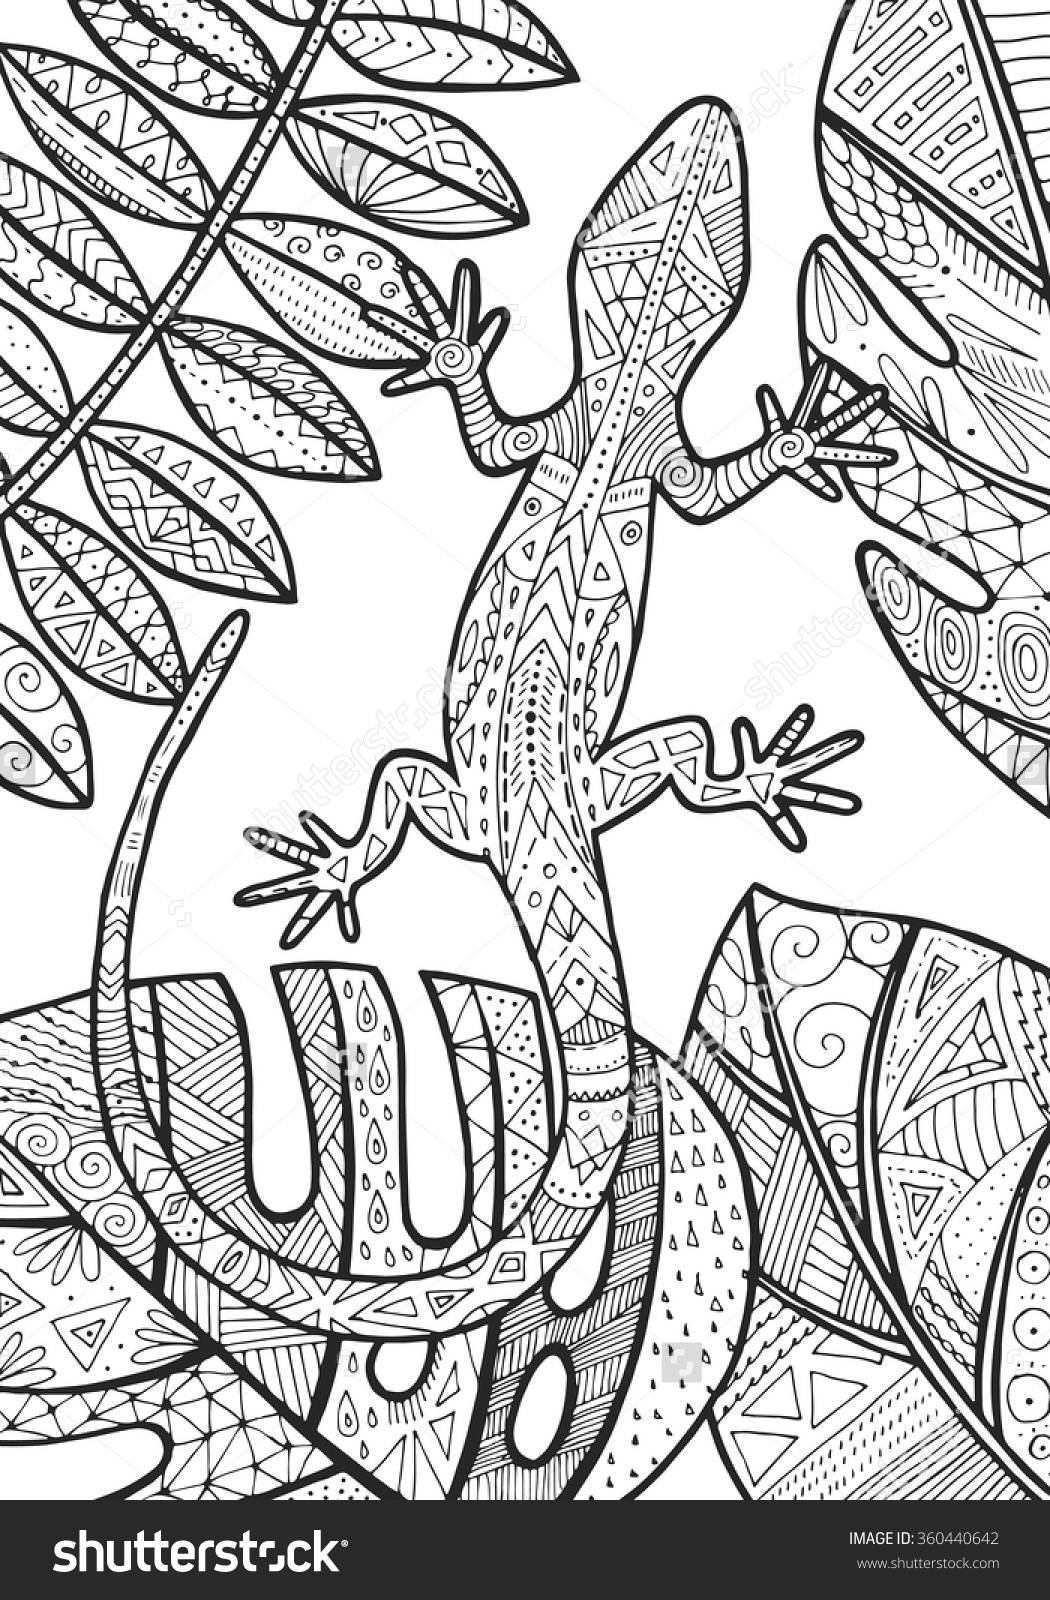 tropical coloring pages tropical beach coloring pages at getdrawings free download pages tropical coloring